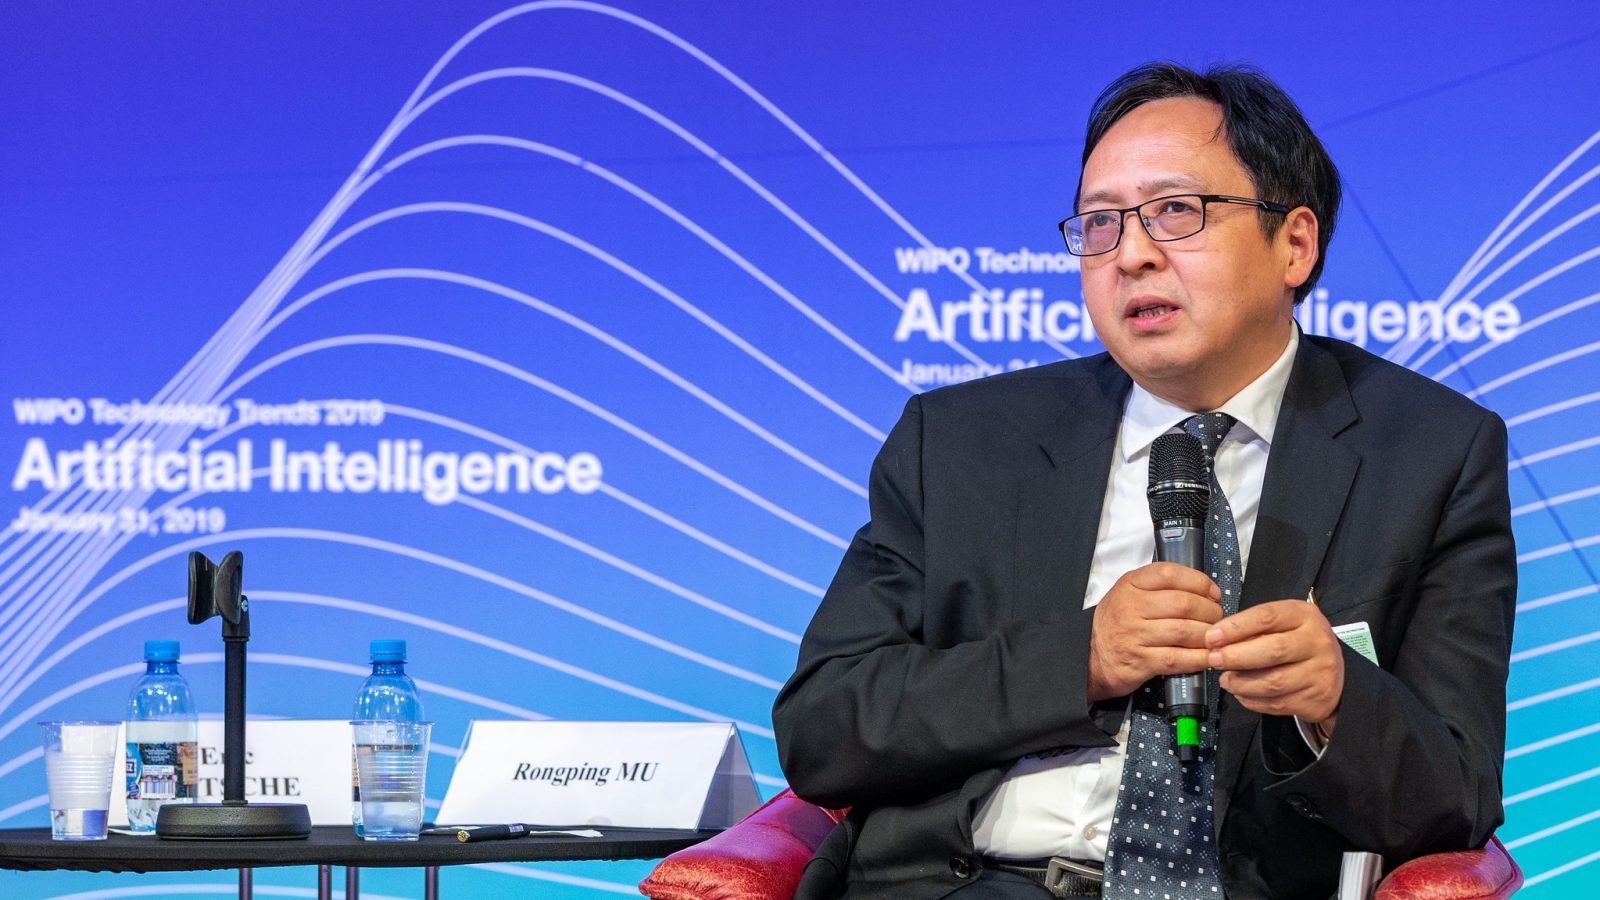 Rongping Mu, Head of the Institutes of Sciences and Development in China, speaks at a panel discussion on artificial intelligence